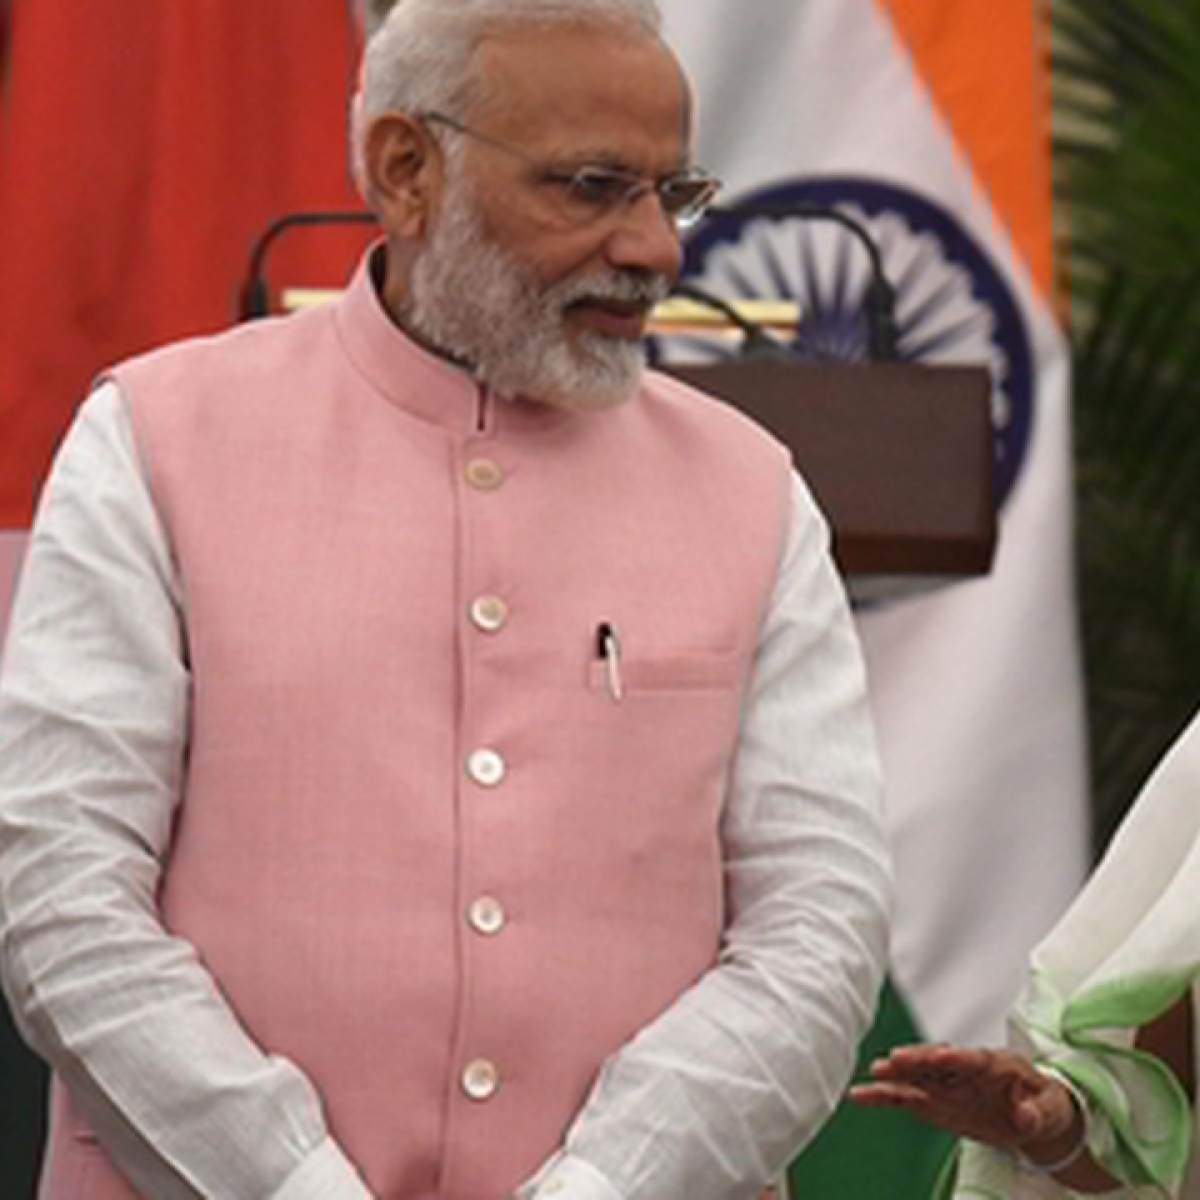 WhatsApp Hacking: Mamata says her messages were swooped upon, asks Modi to 'take care of it'